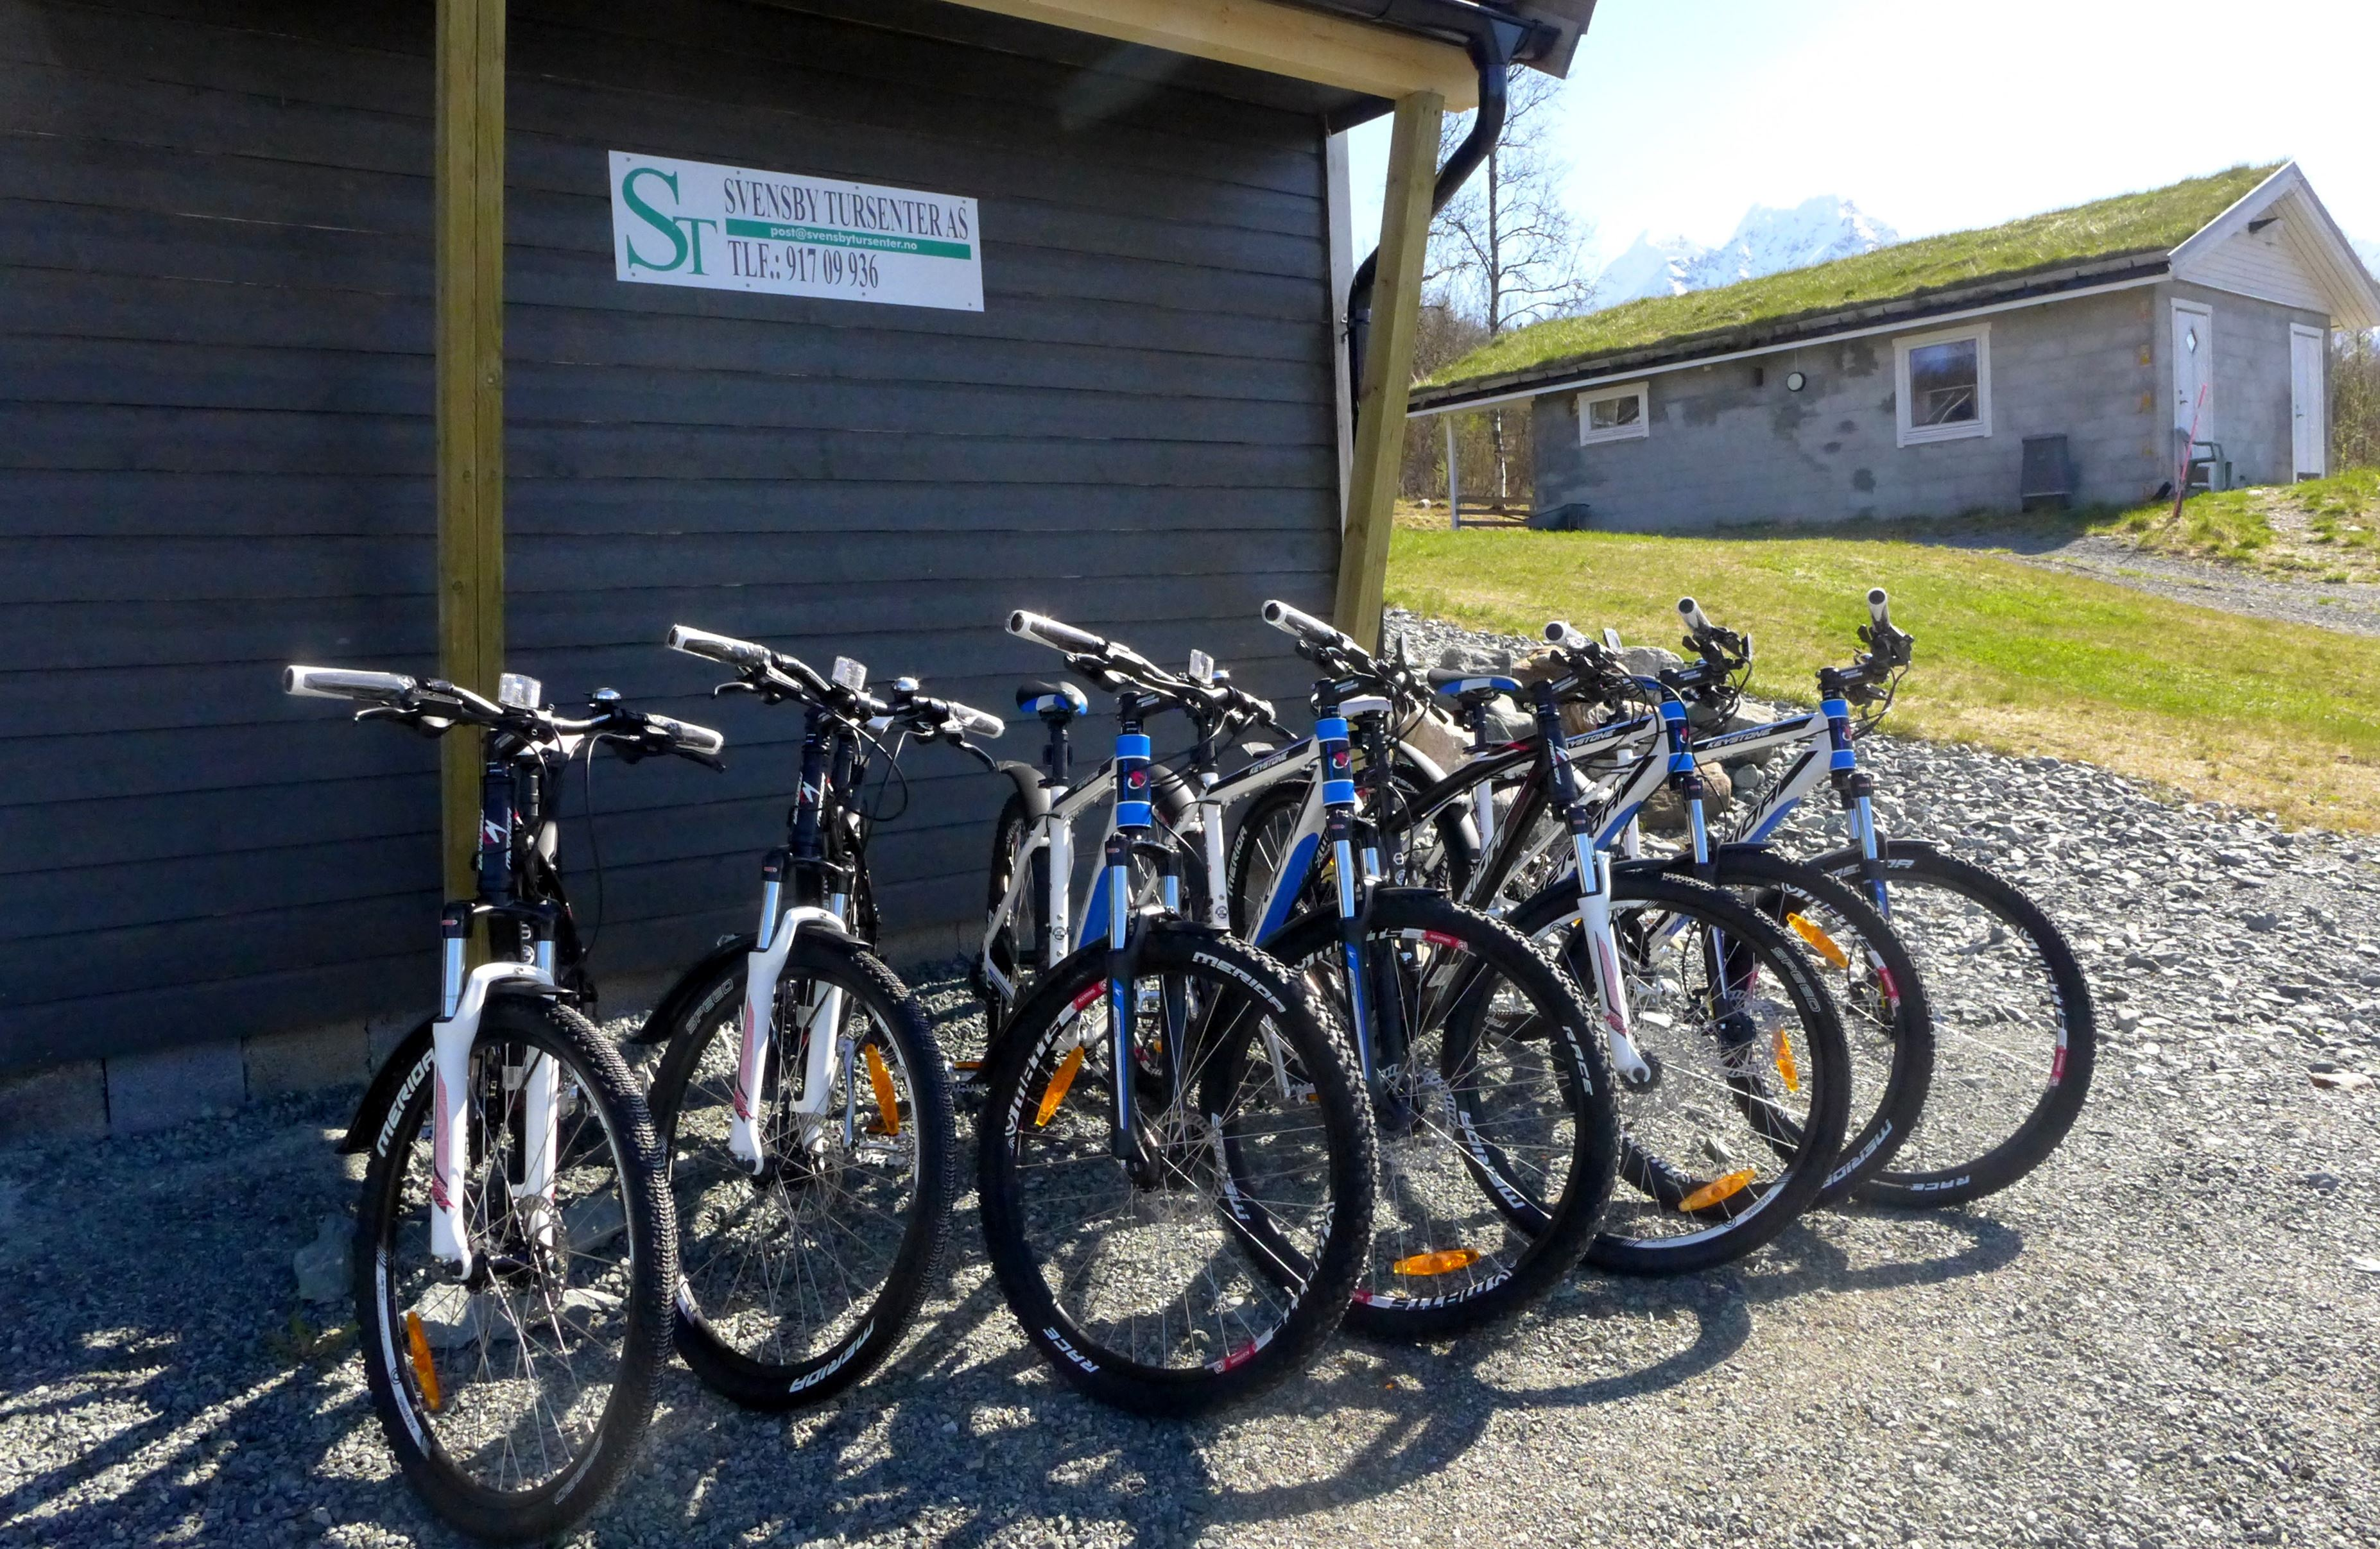 Terrainbikes for rent at Svensby/Lyngen